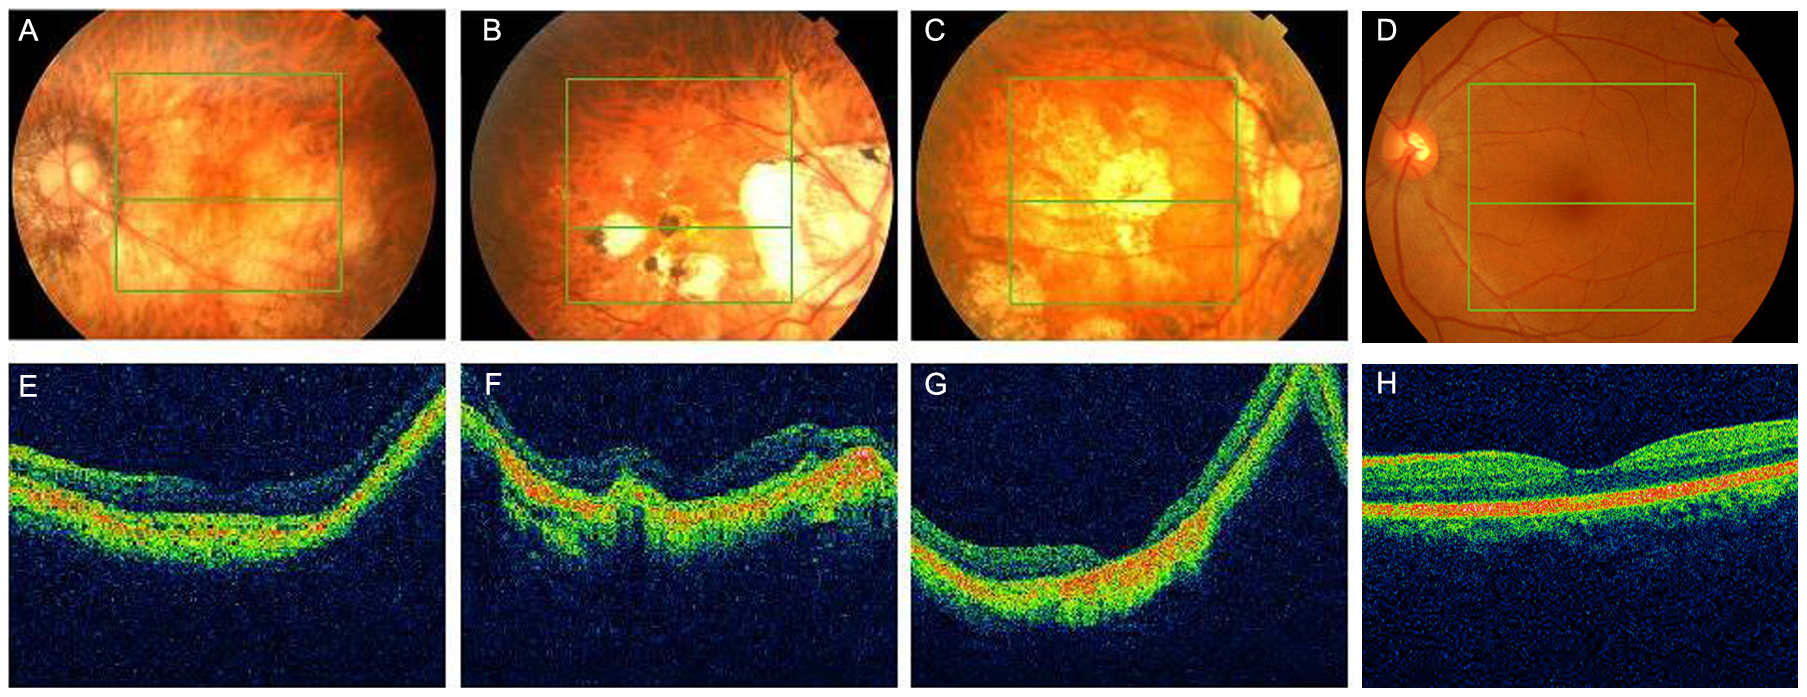 Fundus photographs and optical coherence tomography (OCT) of high myopia patients from the sporadic cases.